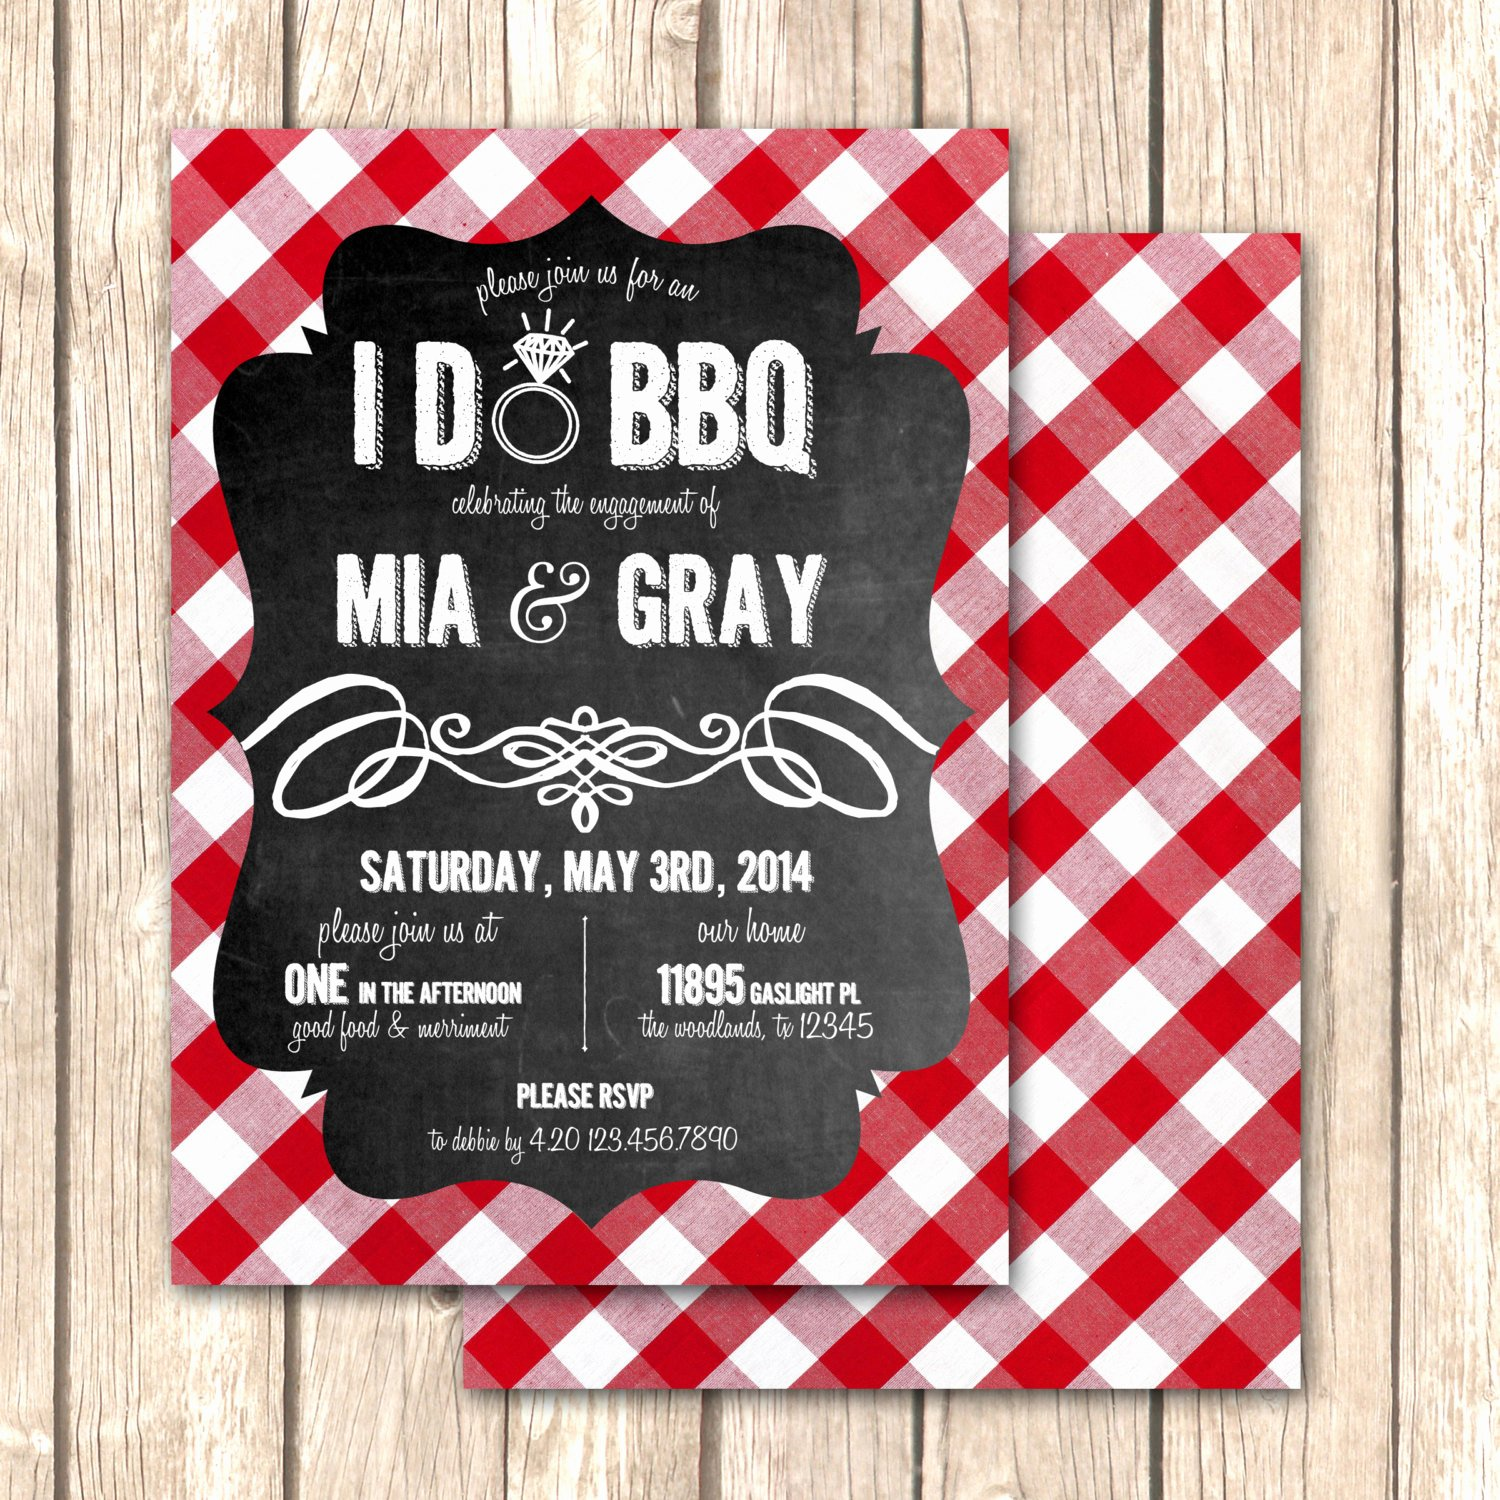 I Do Barbecue Invitations Luxury I Do Bbq Bridal Shower Invitation Rehearsal Dinner by Vivalalovely